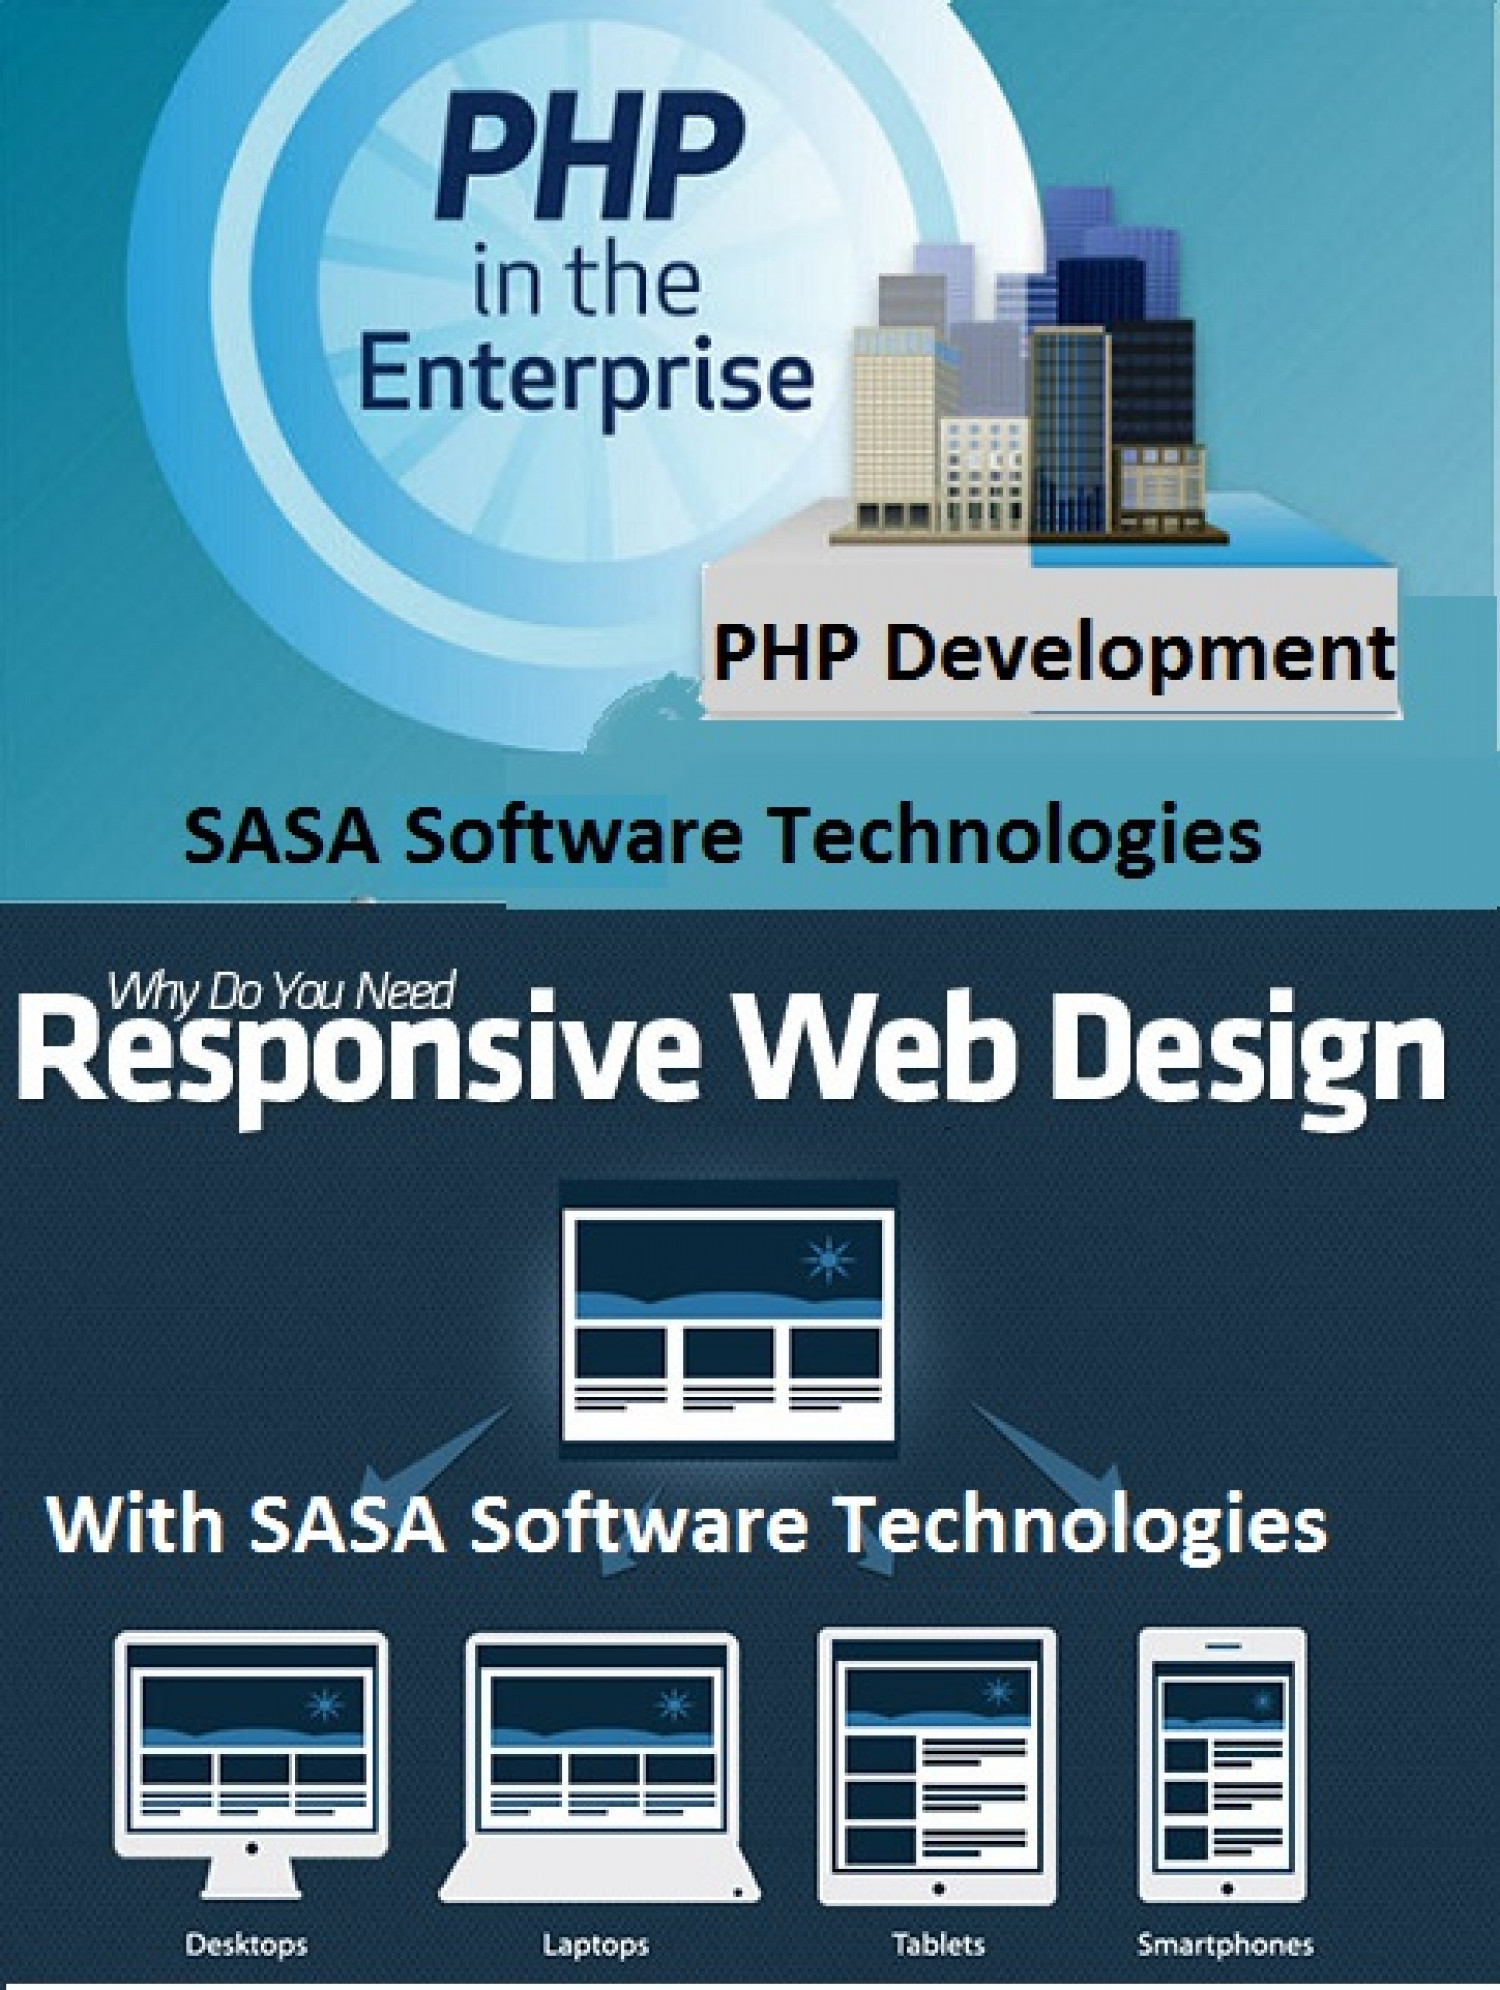 PHP Development Company In India Infographic